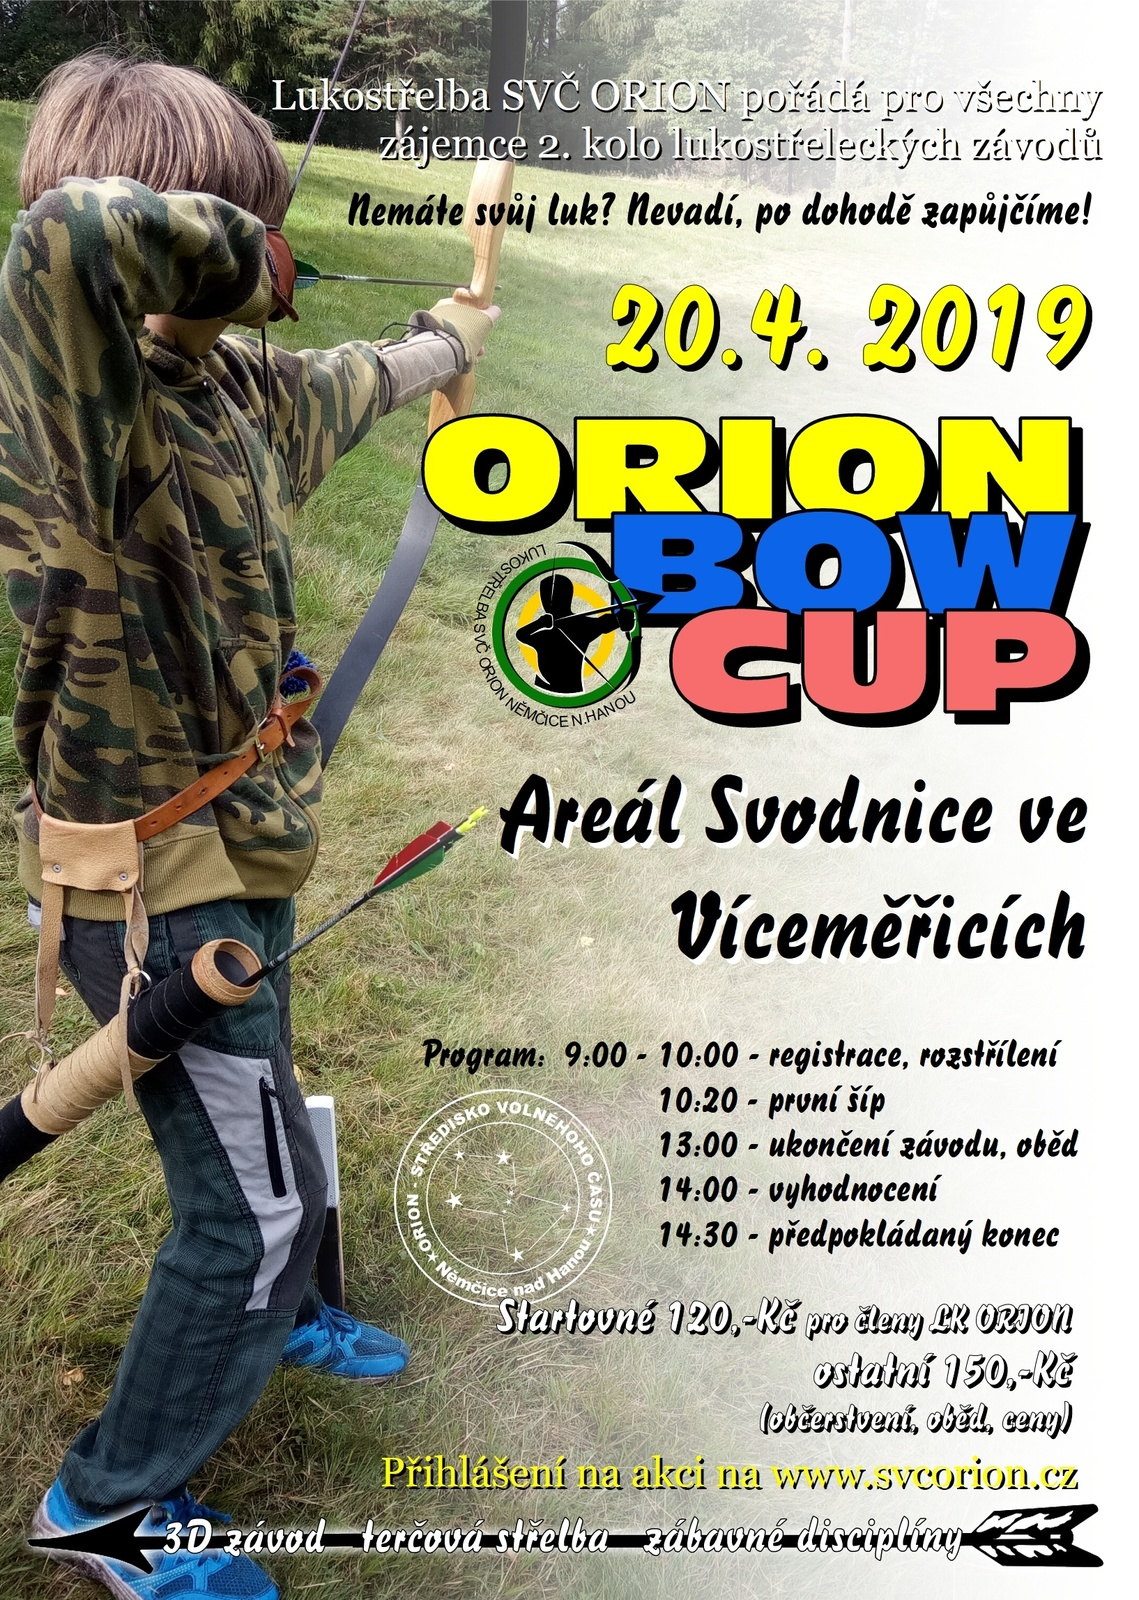 Orion Bow Cup 2 2019.jpg